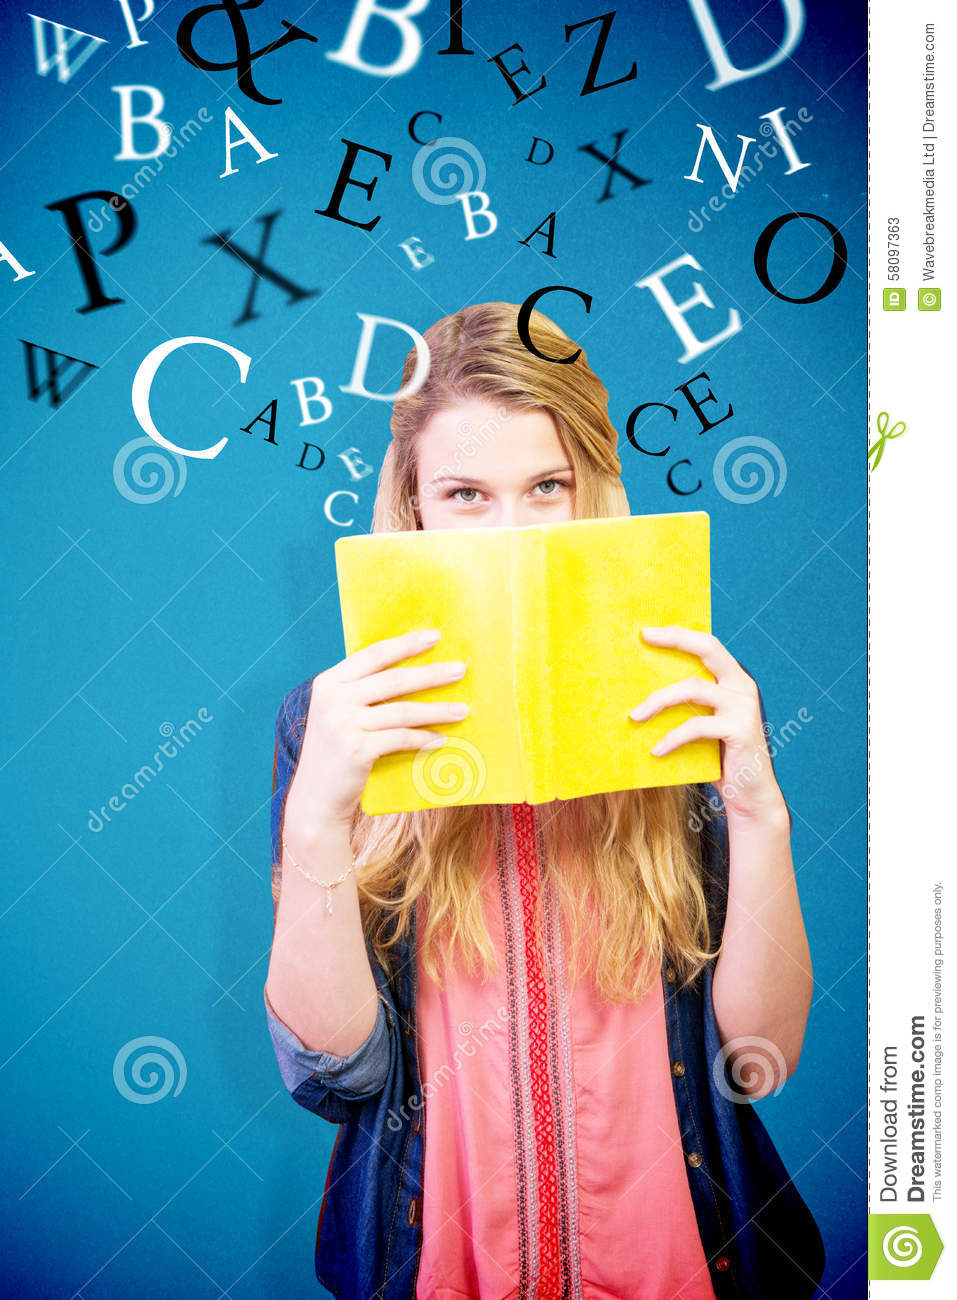 Book Covering Face : Composite image of student covering face with book in